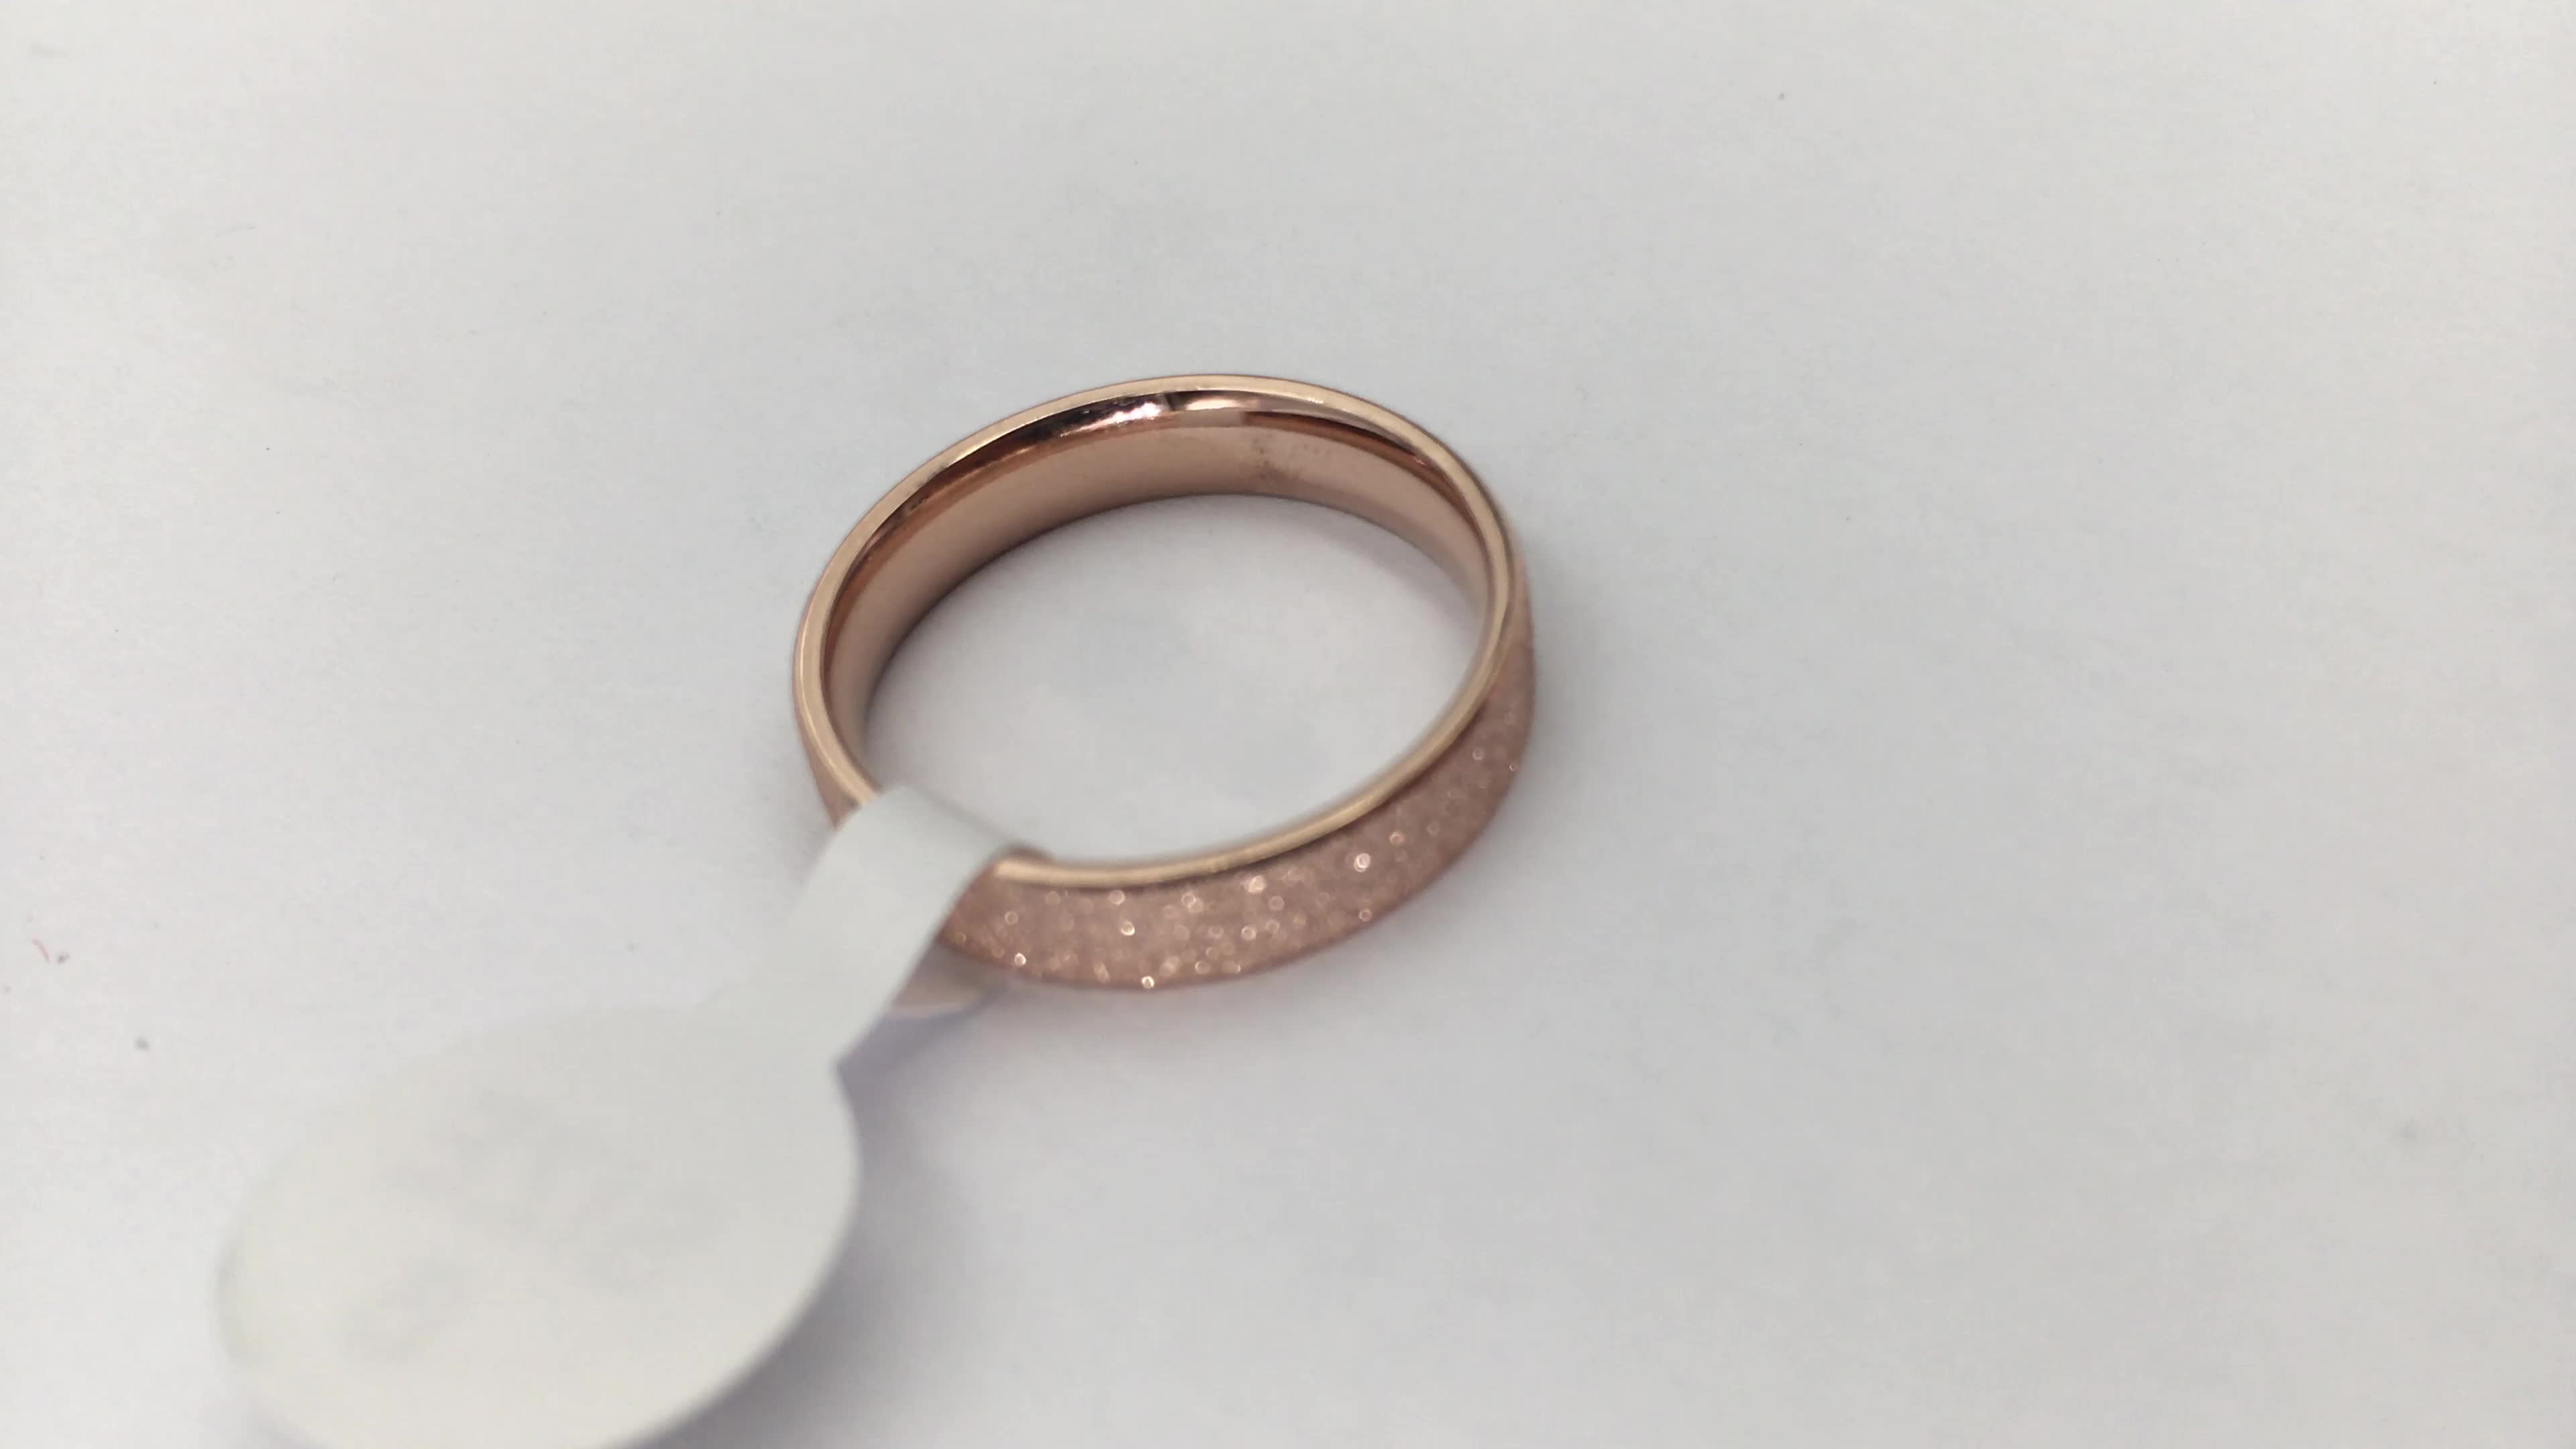 Gold Finger Couple Rings Design For Women With Price ...